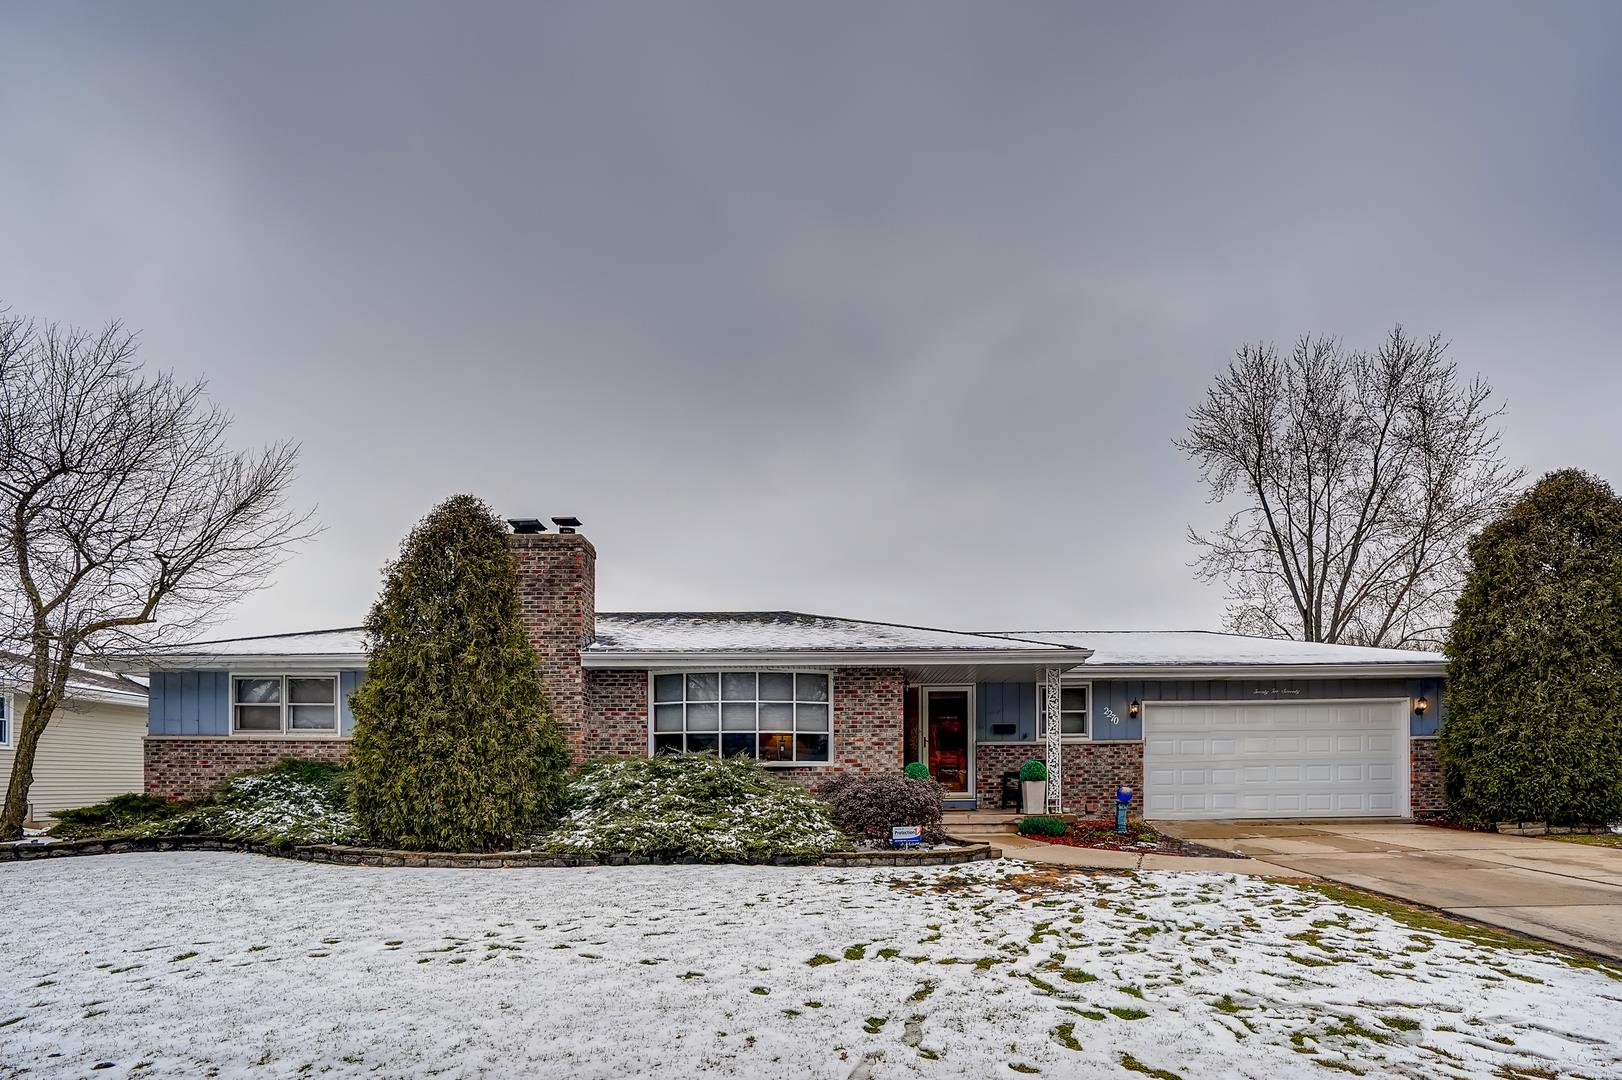 2270 COUNTRY KNOLL Lane, Elgin, IL 60123 - #: 11025747